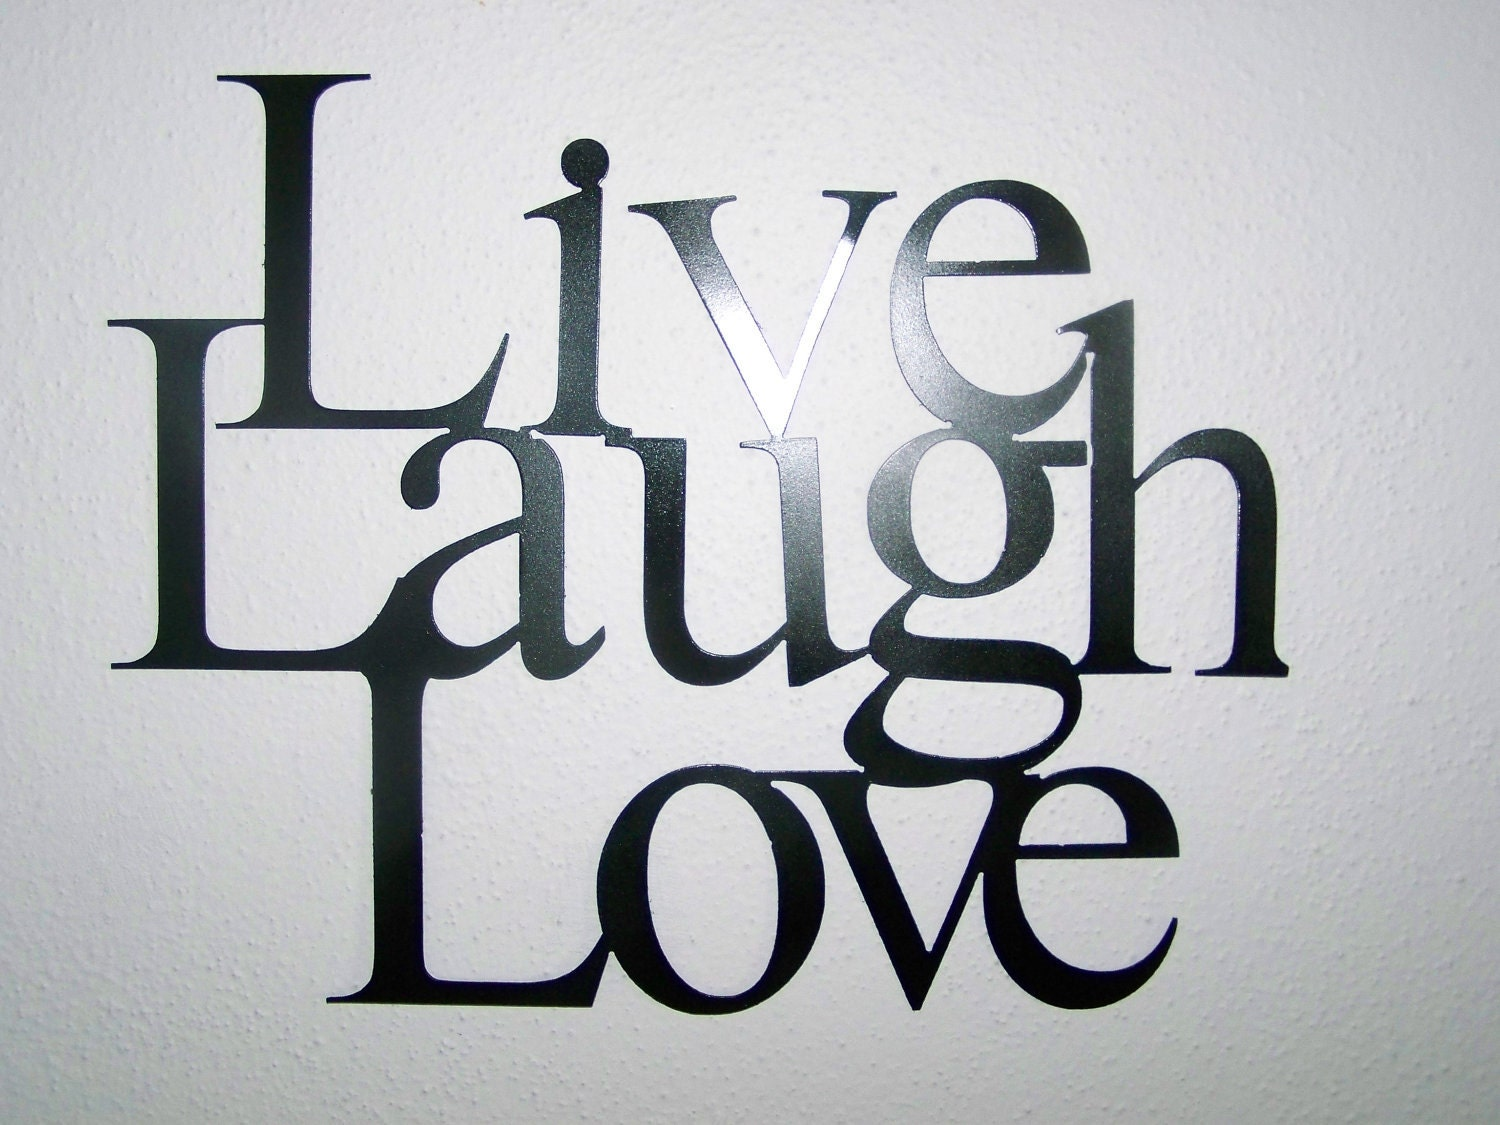 Wall Colour Inspiration: Live Laugh Love Wall Hanging Decor Available In 3 Colors